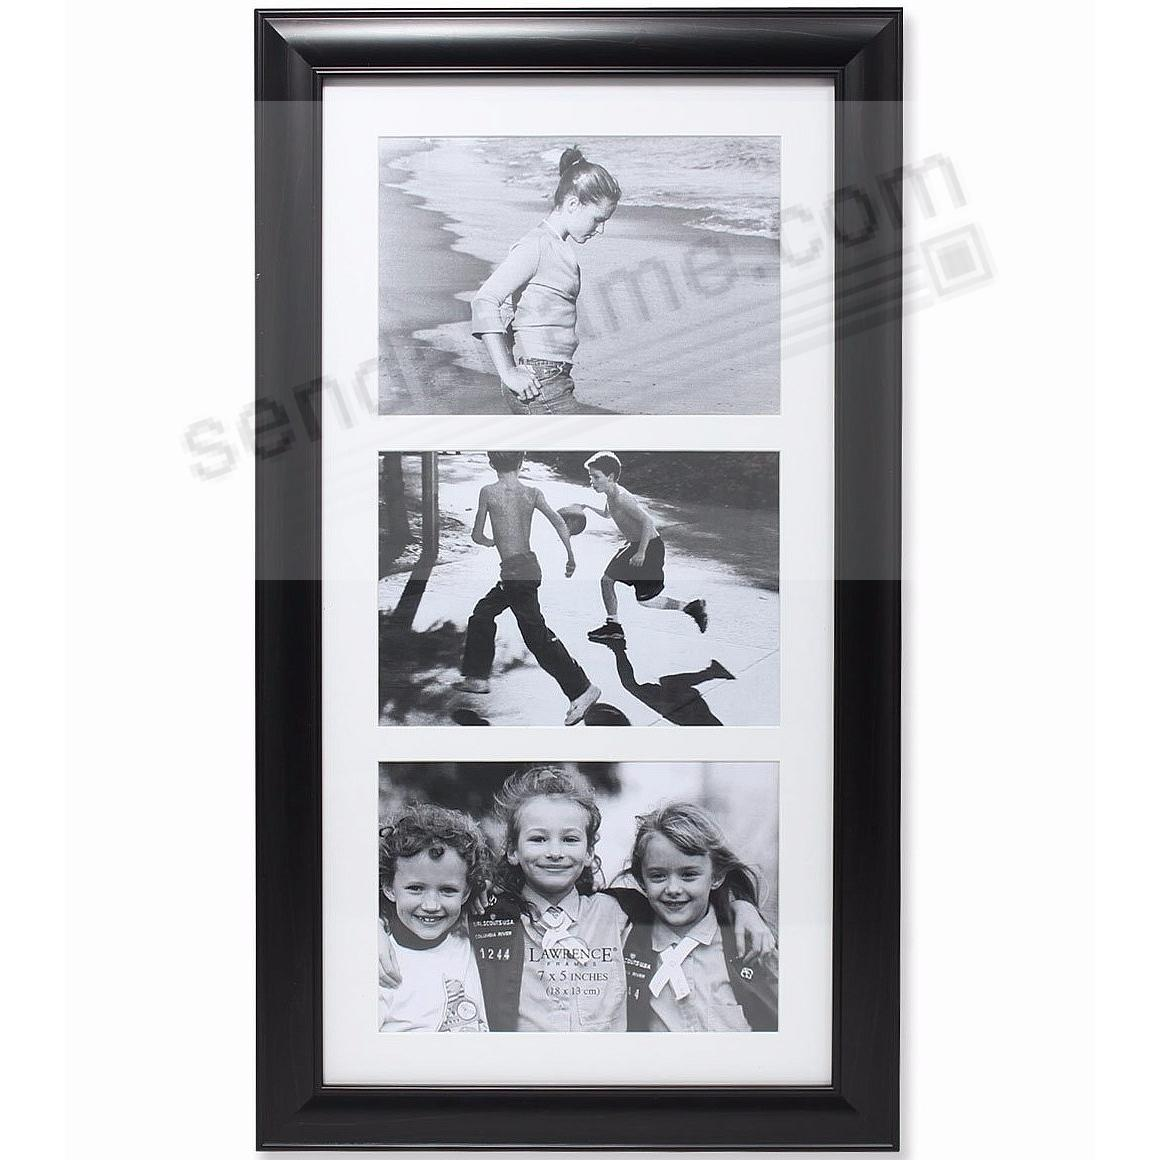 Black matted collage displays (3) 5x7 photos by Lawrence®